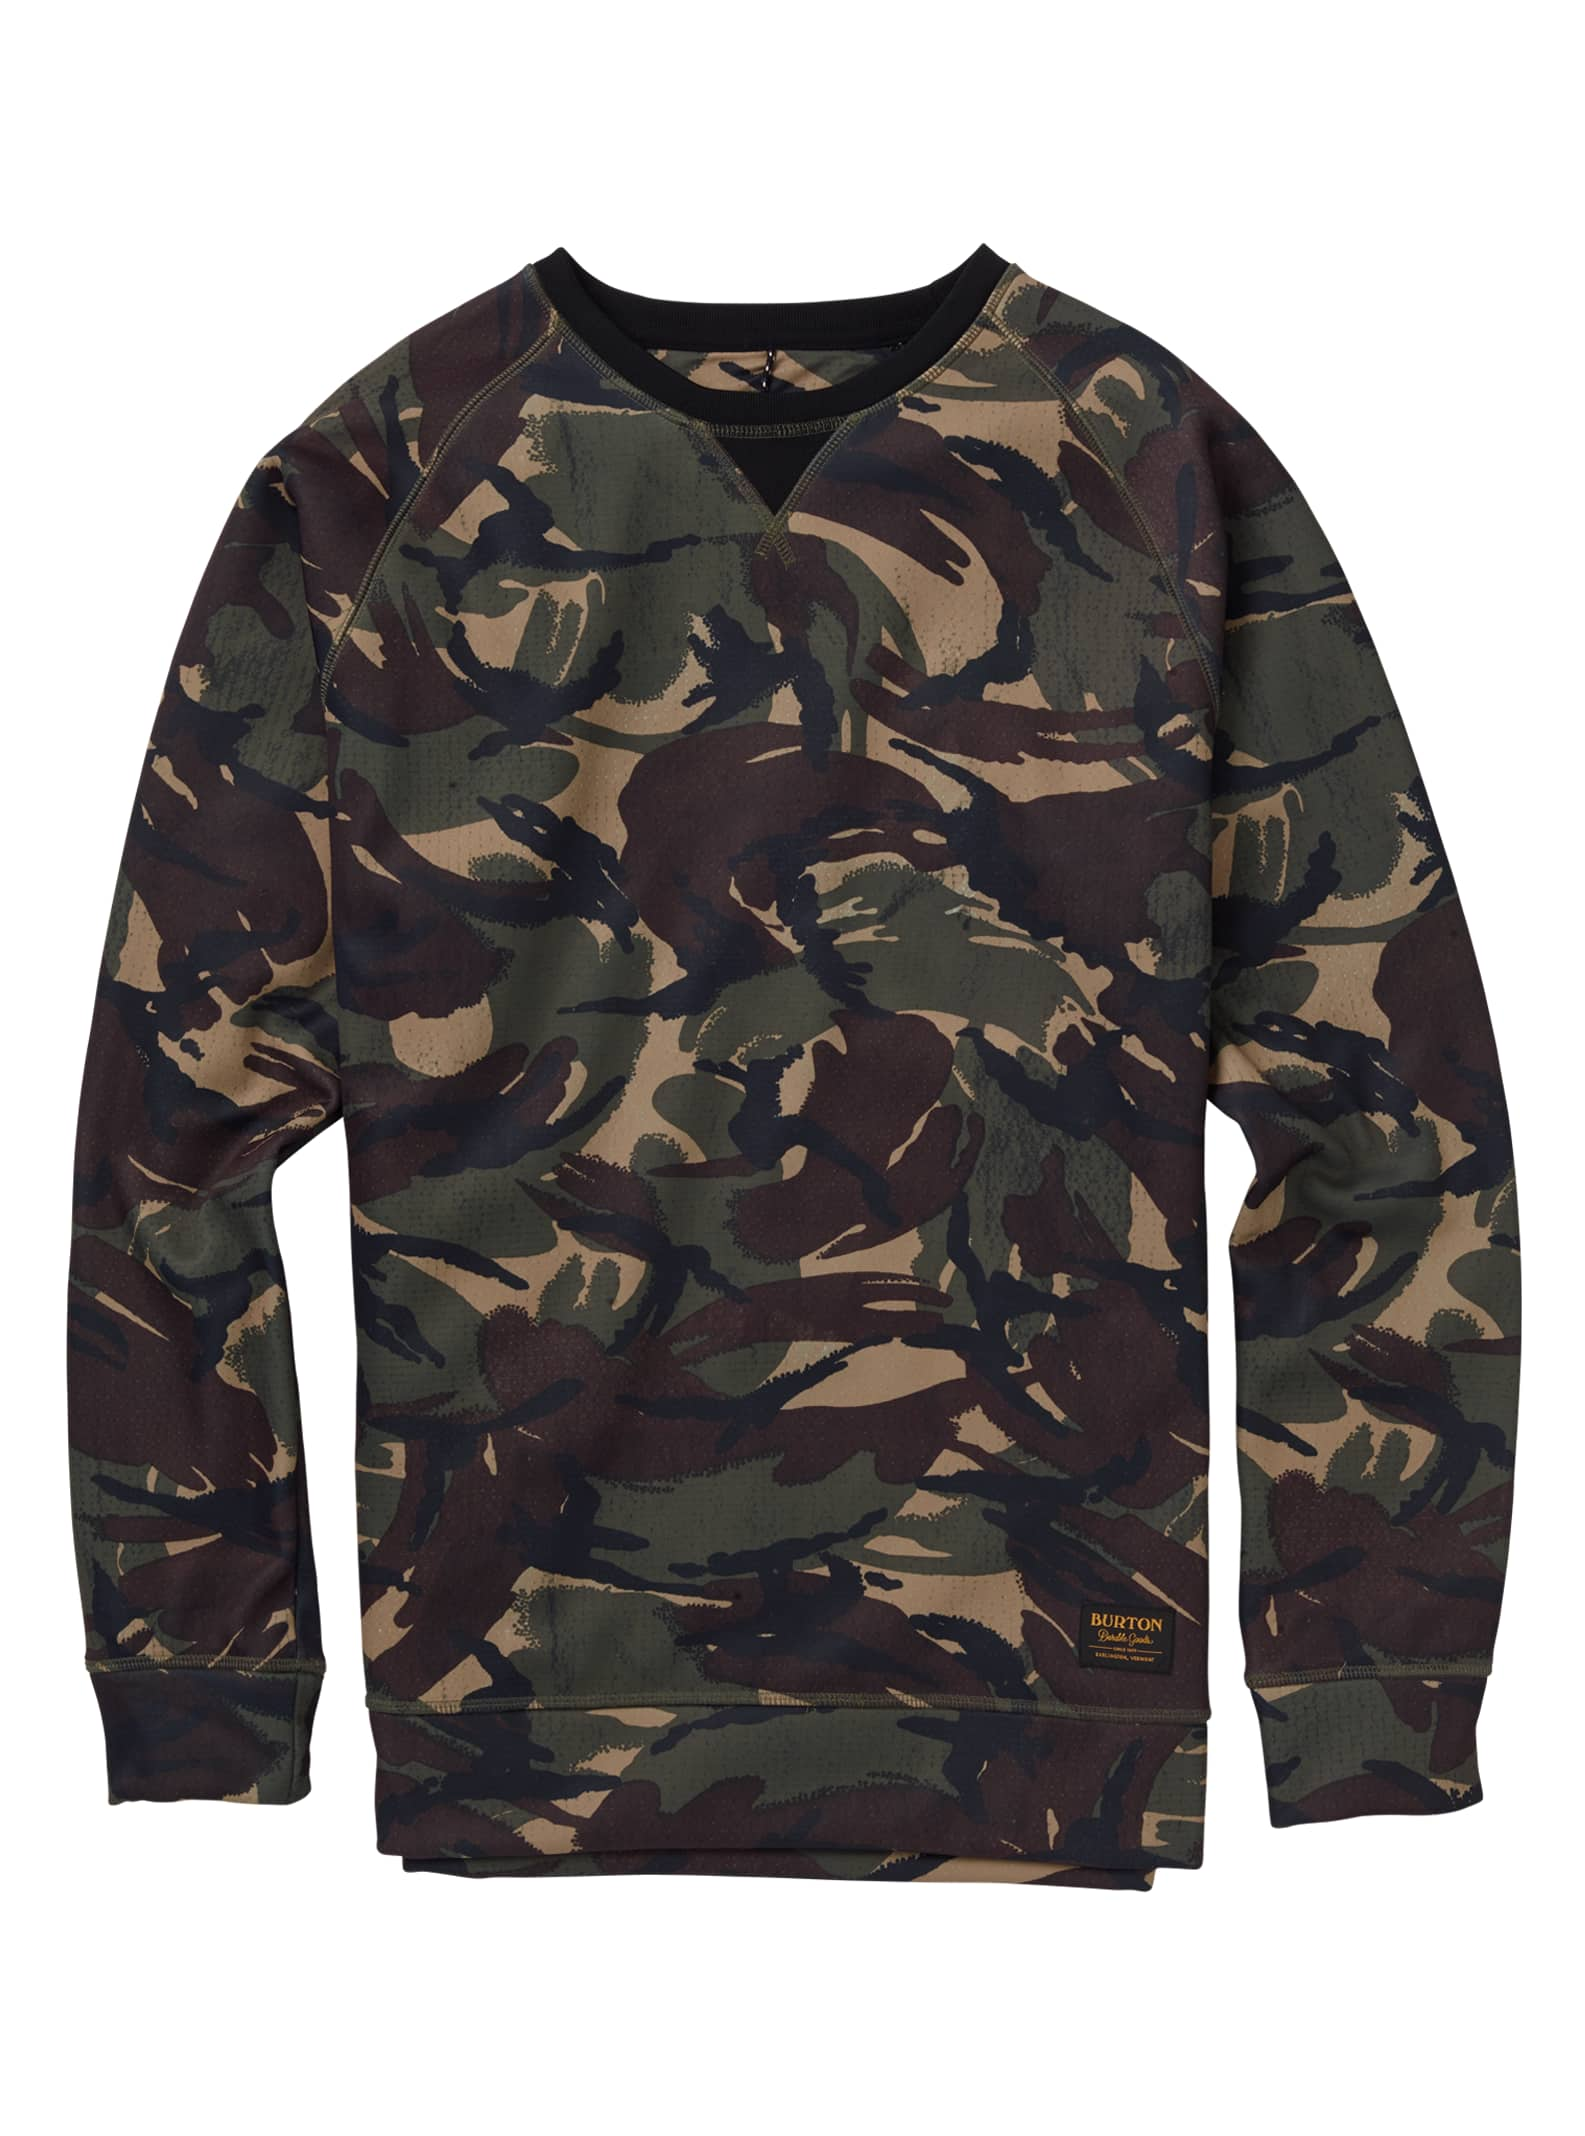 e7eb87bd7 Shop Valentino 'Rockstud' camouflage sweatshirt in Julian Fashion from the  world's best independent boutiques at farfetch.com. Shop …